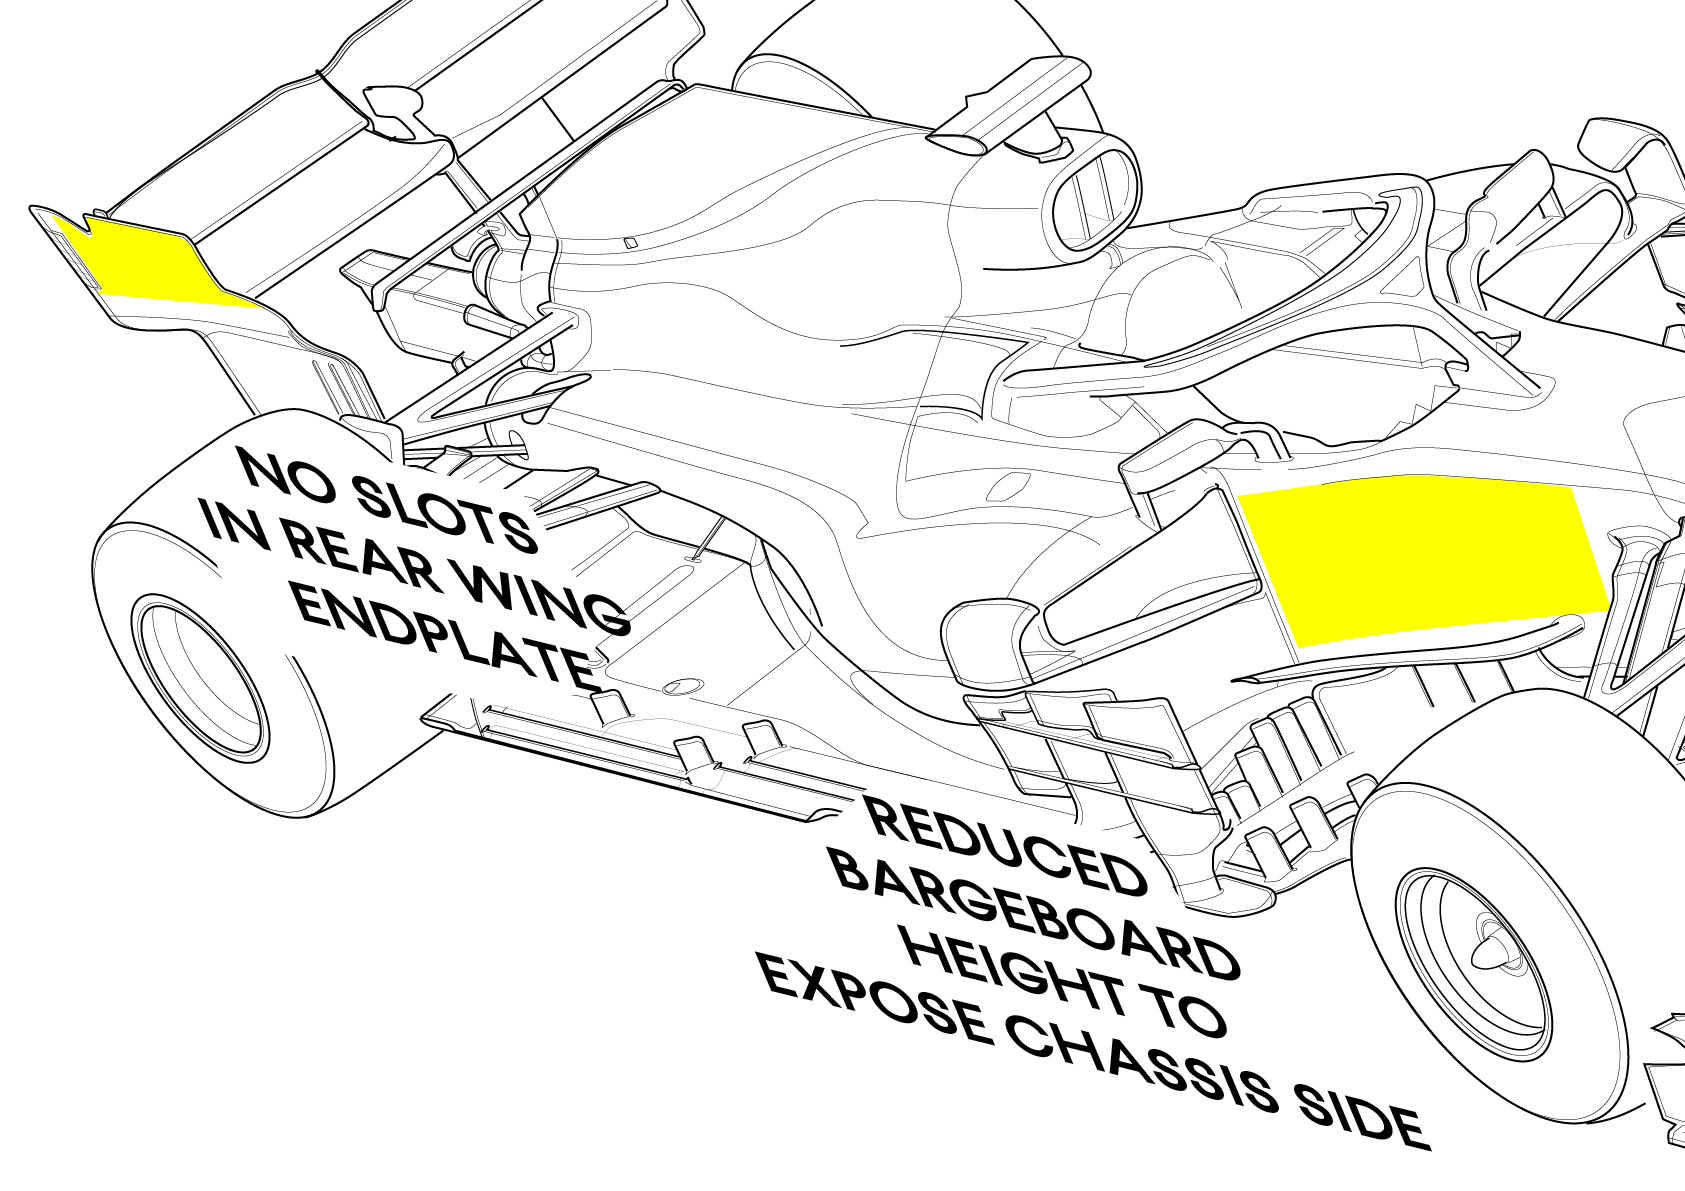 F1 2019 Regulations - bargeboards.